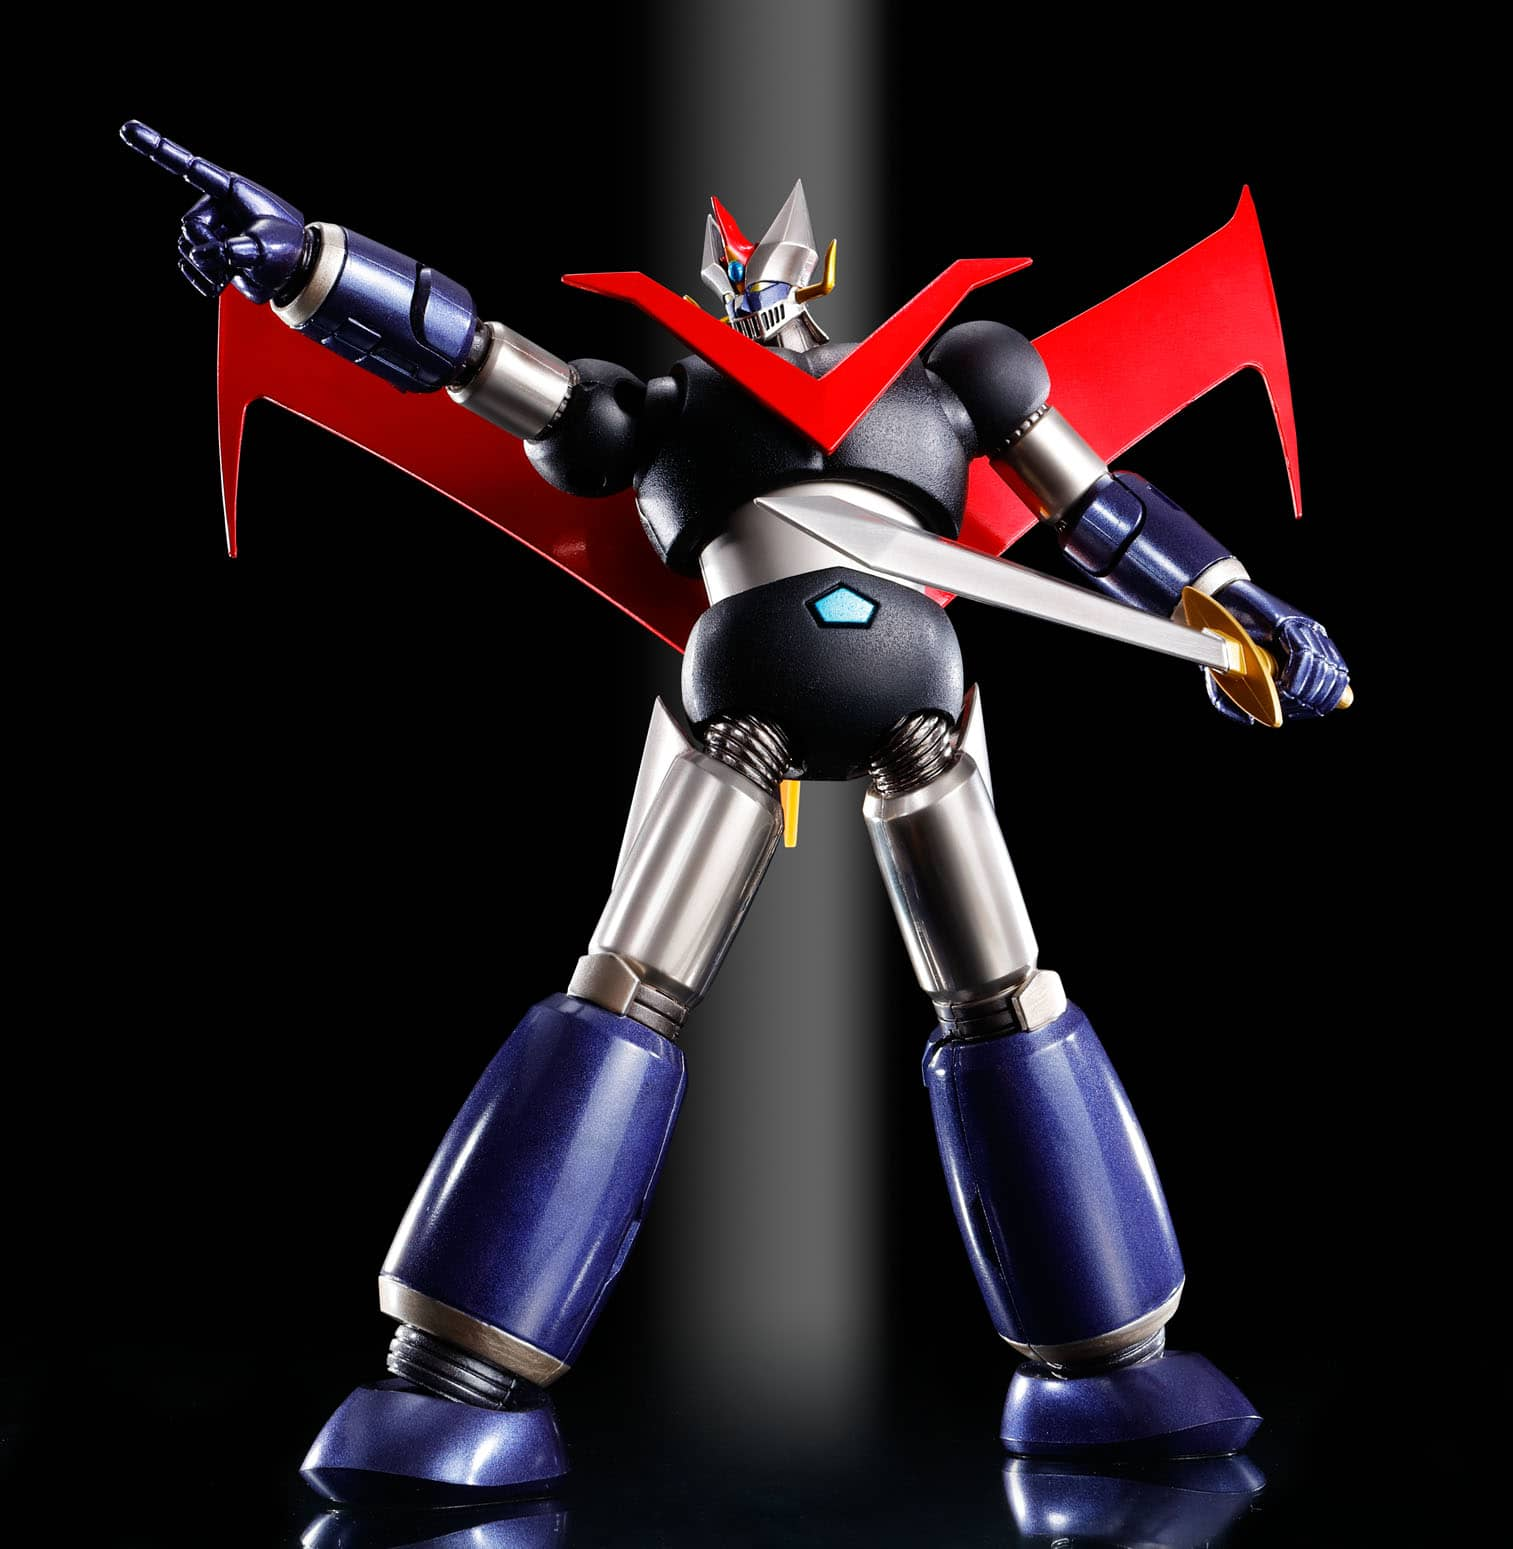 GREAT MAZINGER KUROGANE FINISH FIGURA 14 CM GREAT MAZINGER SUPER ROBOT CHOGOKIN